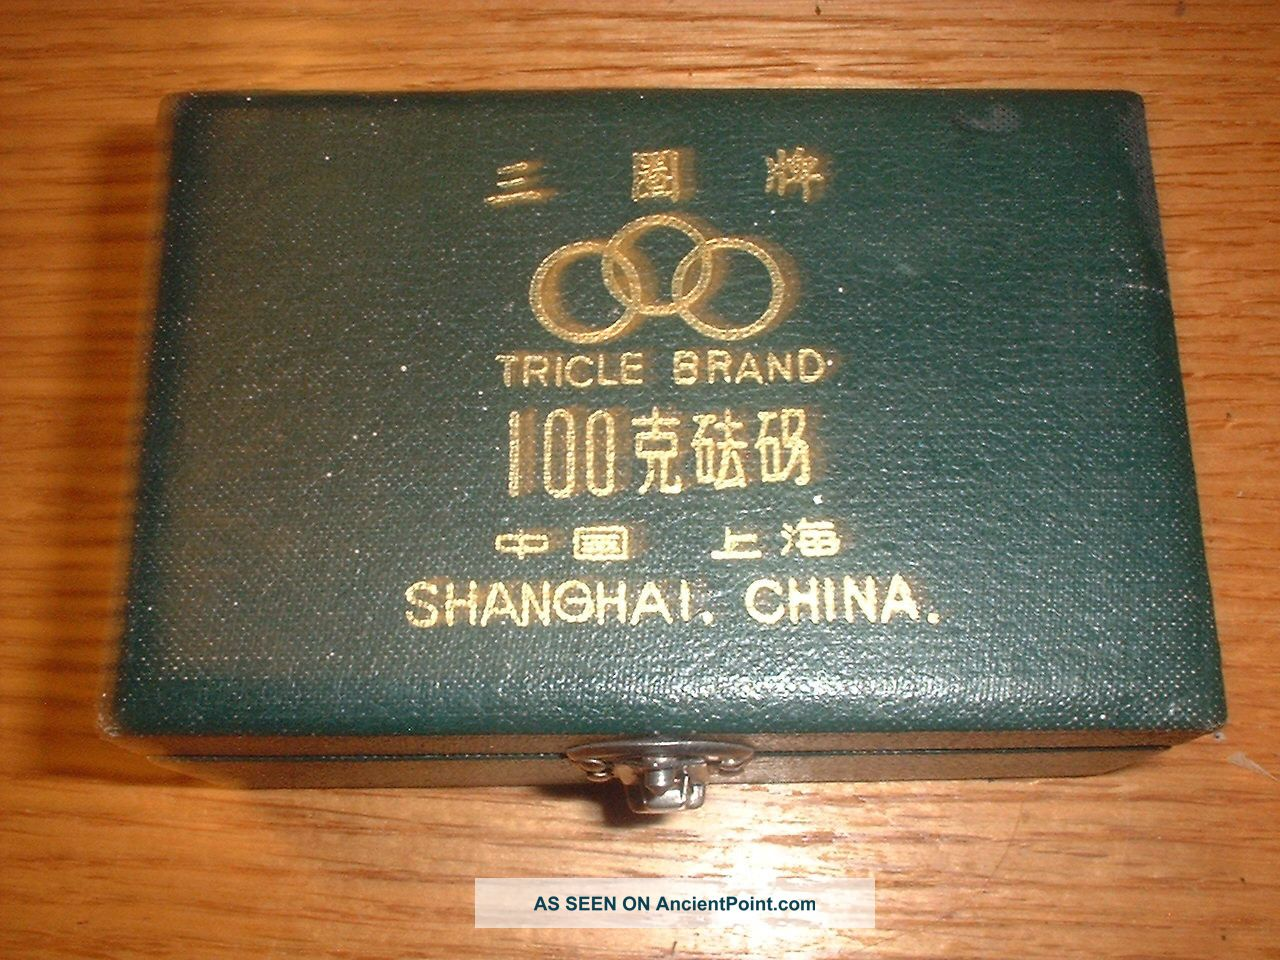 Vintage Shanghai China Scale Gram Weights,  50gm,  2 - 20 Gms,  10gm & 5gm Scales photo